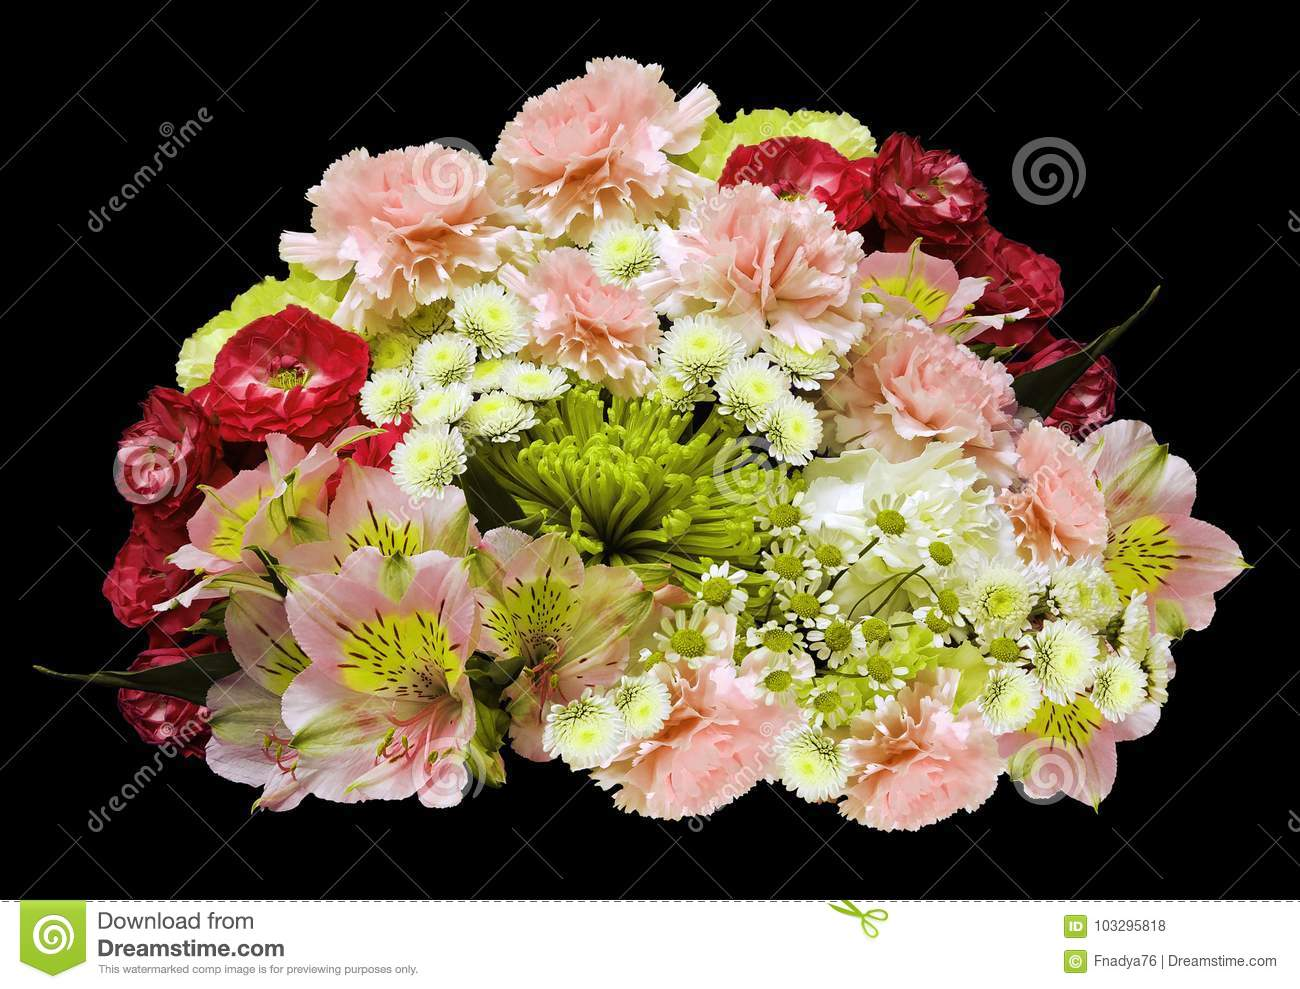 8b78ae0c2d7ea Bouquet of red-pink-yellow-white flowers on an isolated black background  with clipping path. no shadows. Closeup. Roses cloves chrysanthemum  chamomile ...